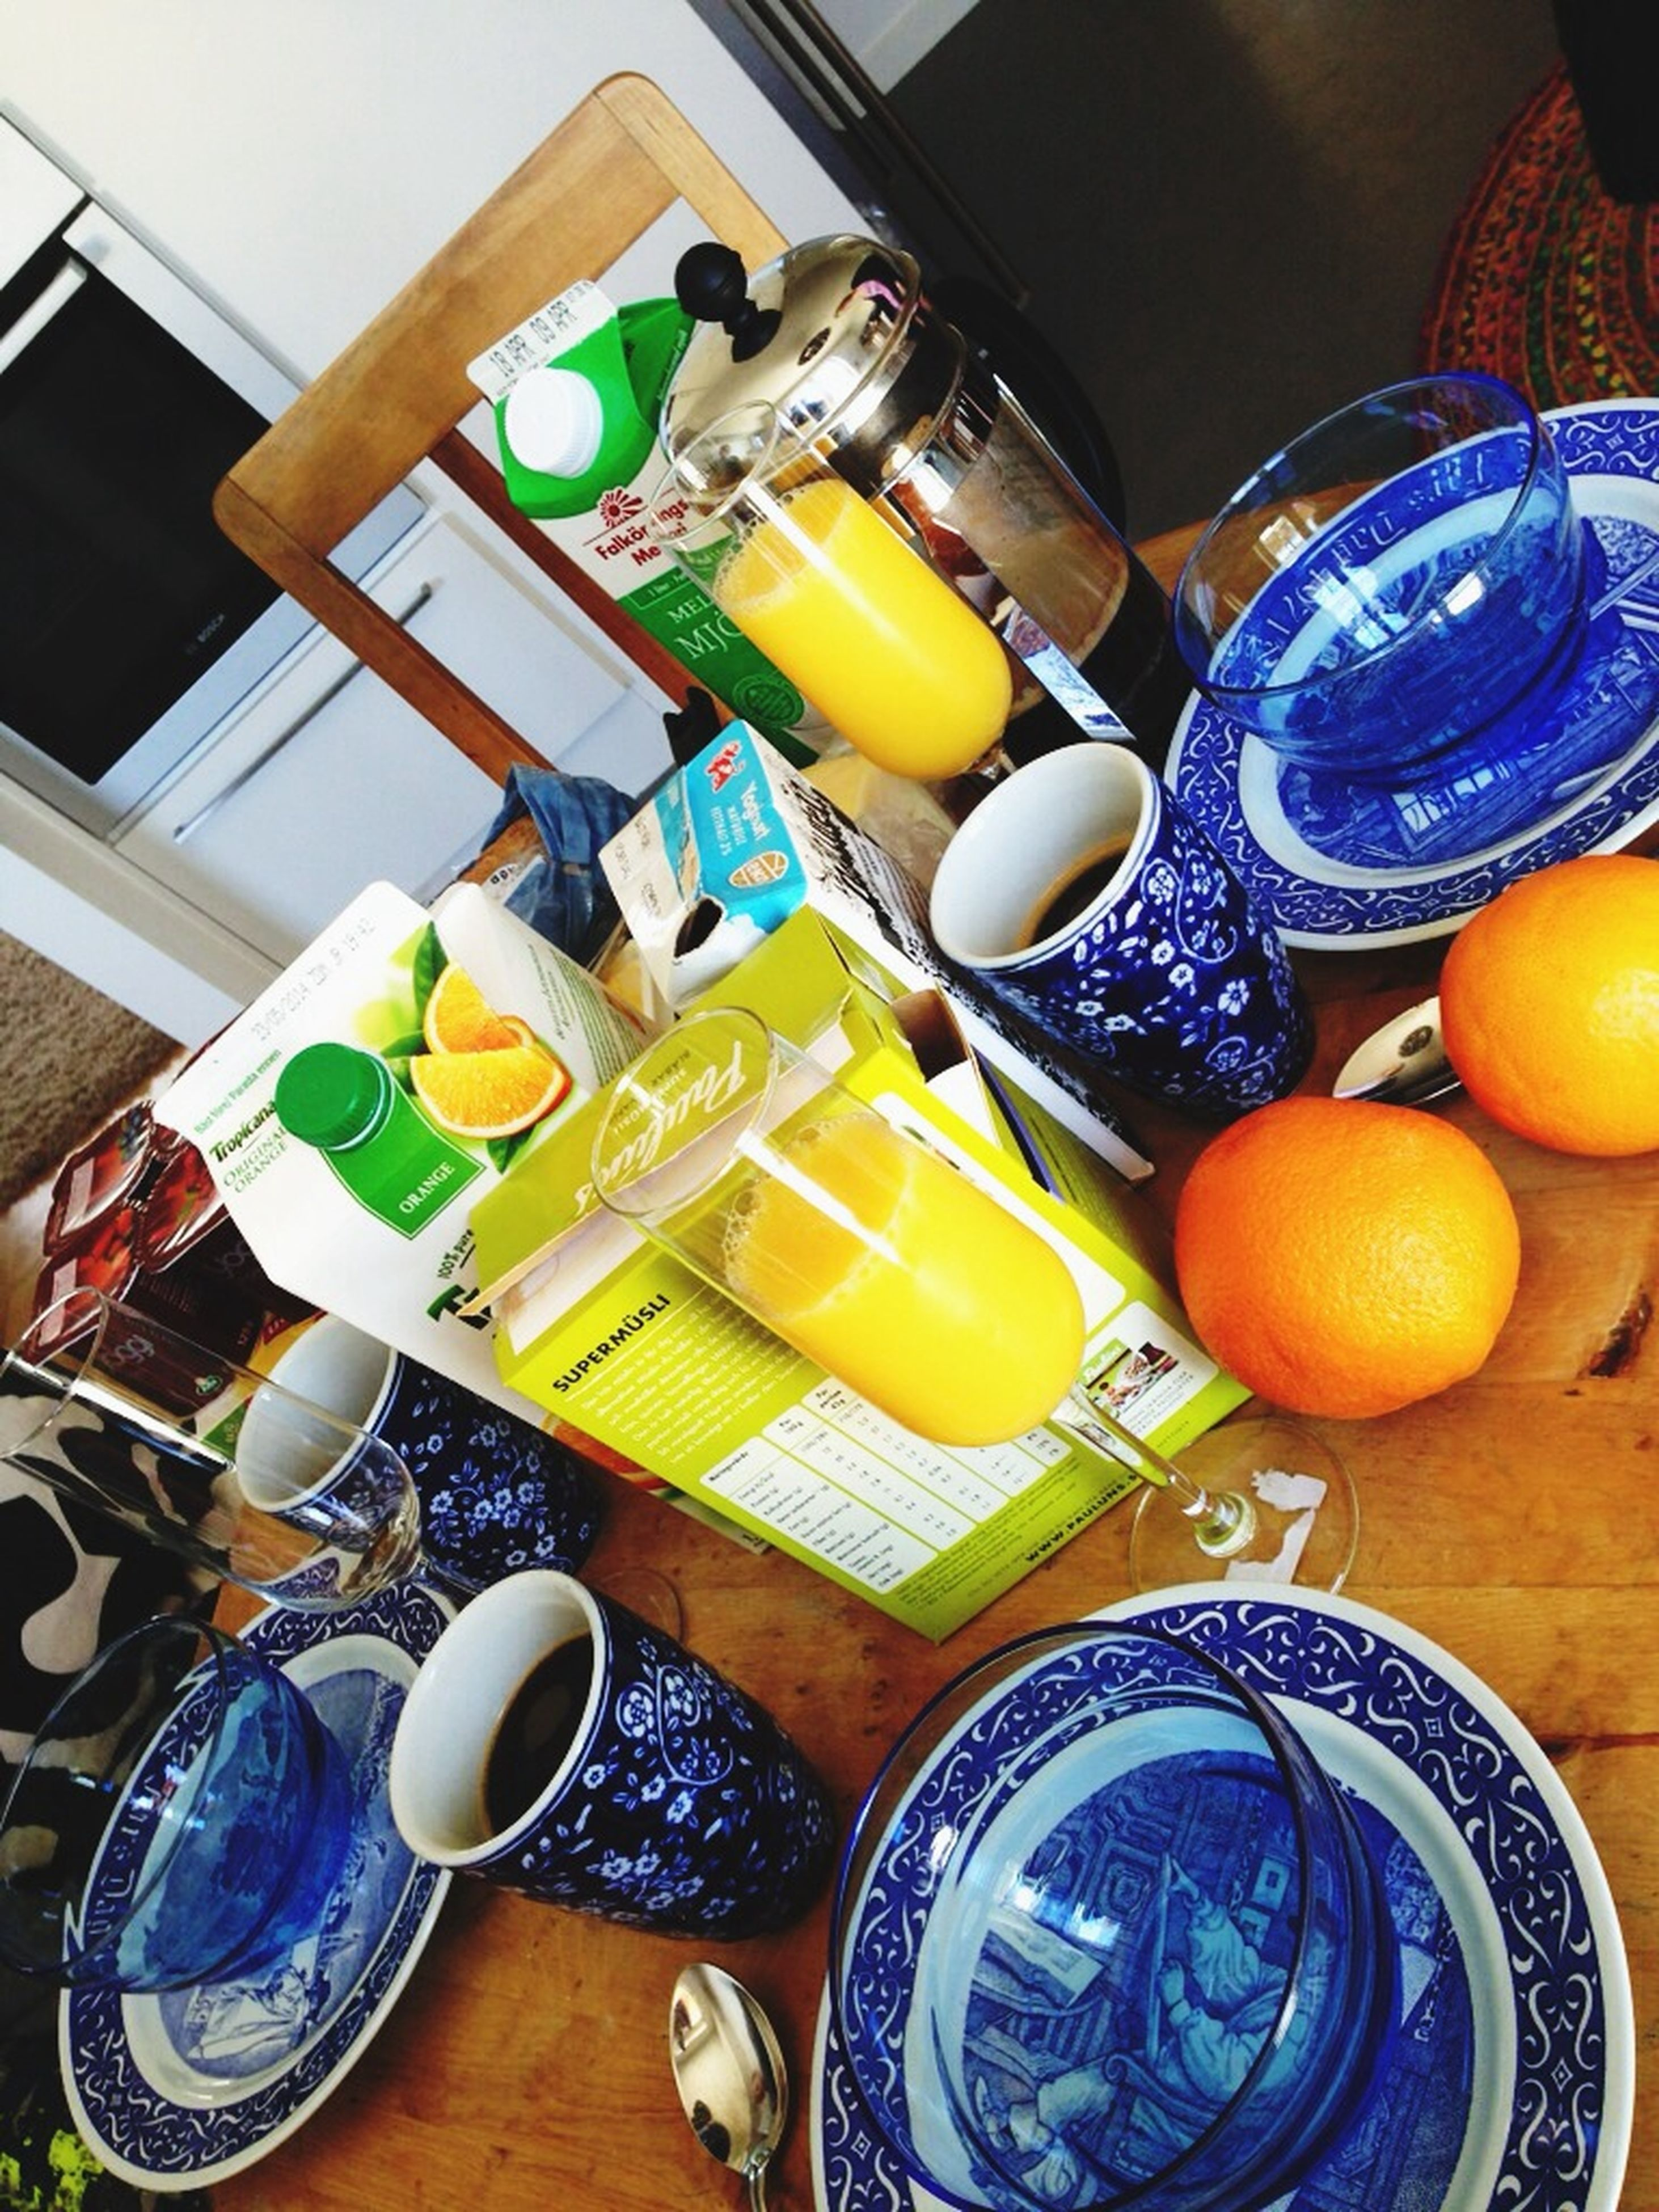 indoors, still life, table, food and drink, variation, multi colored, high angle view, bowl, large group of objects, choice, freshness, food, arrangement, plate, no people, fruit, container, close-up, yellow, drink